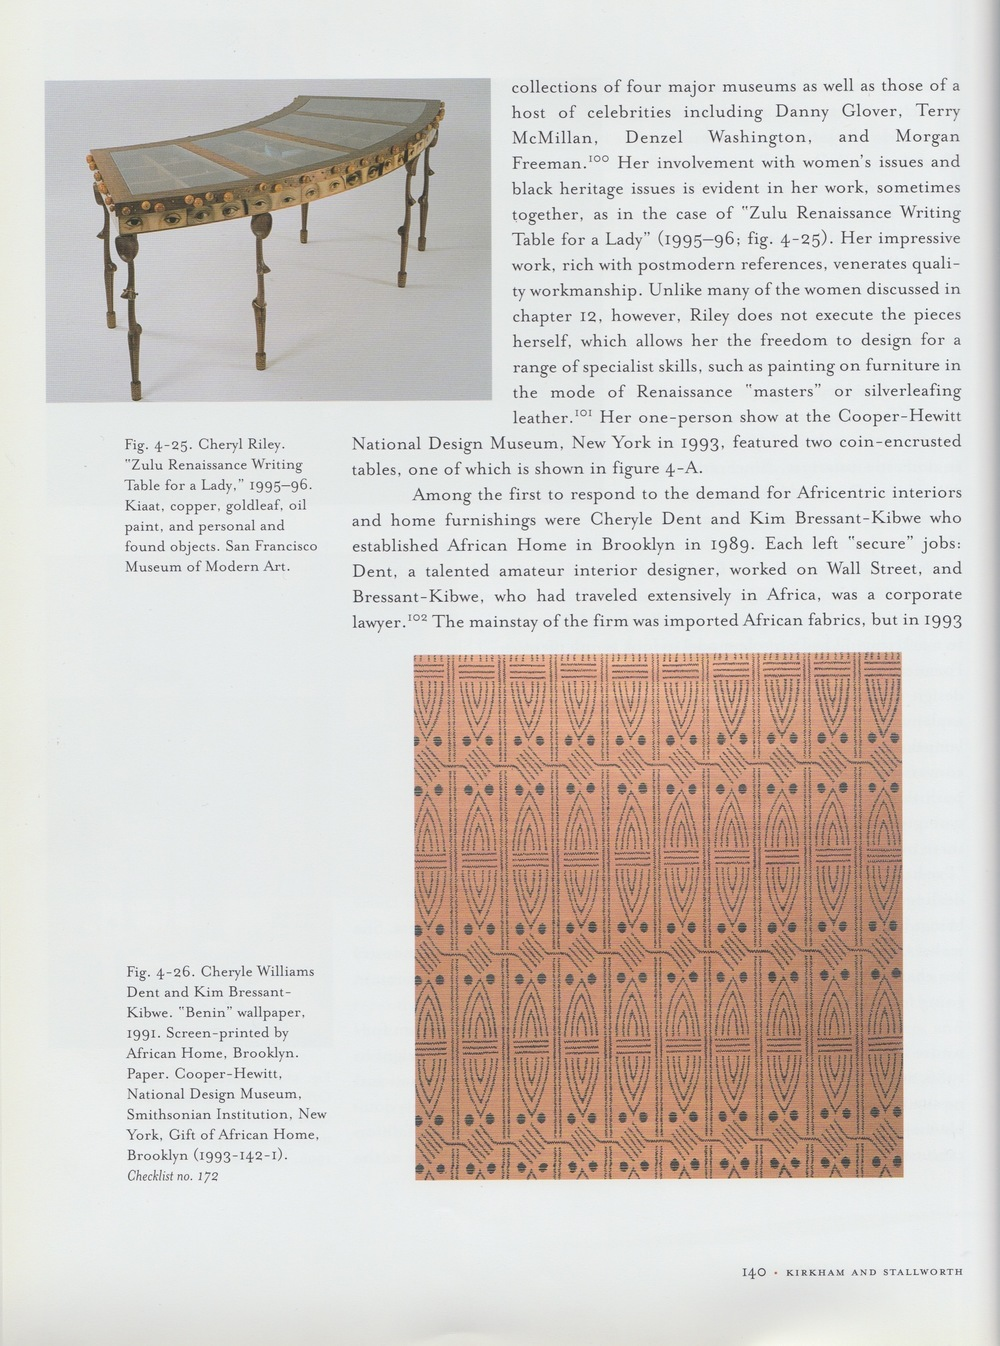 WOMEN DESIGNERS in the USA-pg140 Zulu Renaissance Writing Table for a Lady.jpg